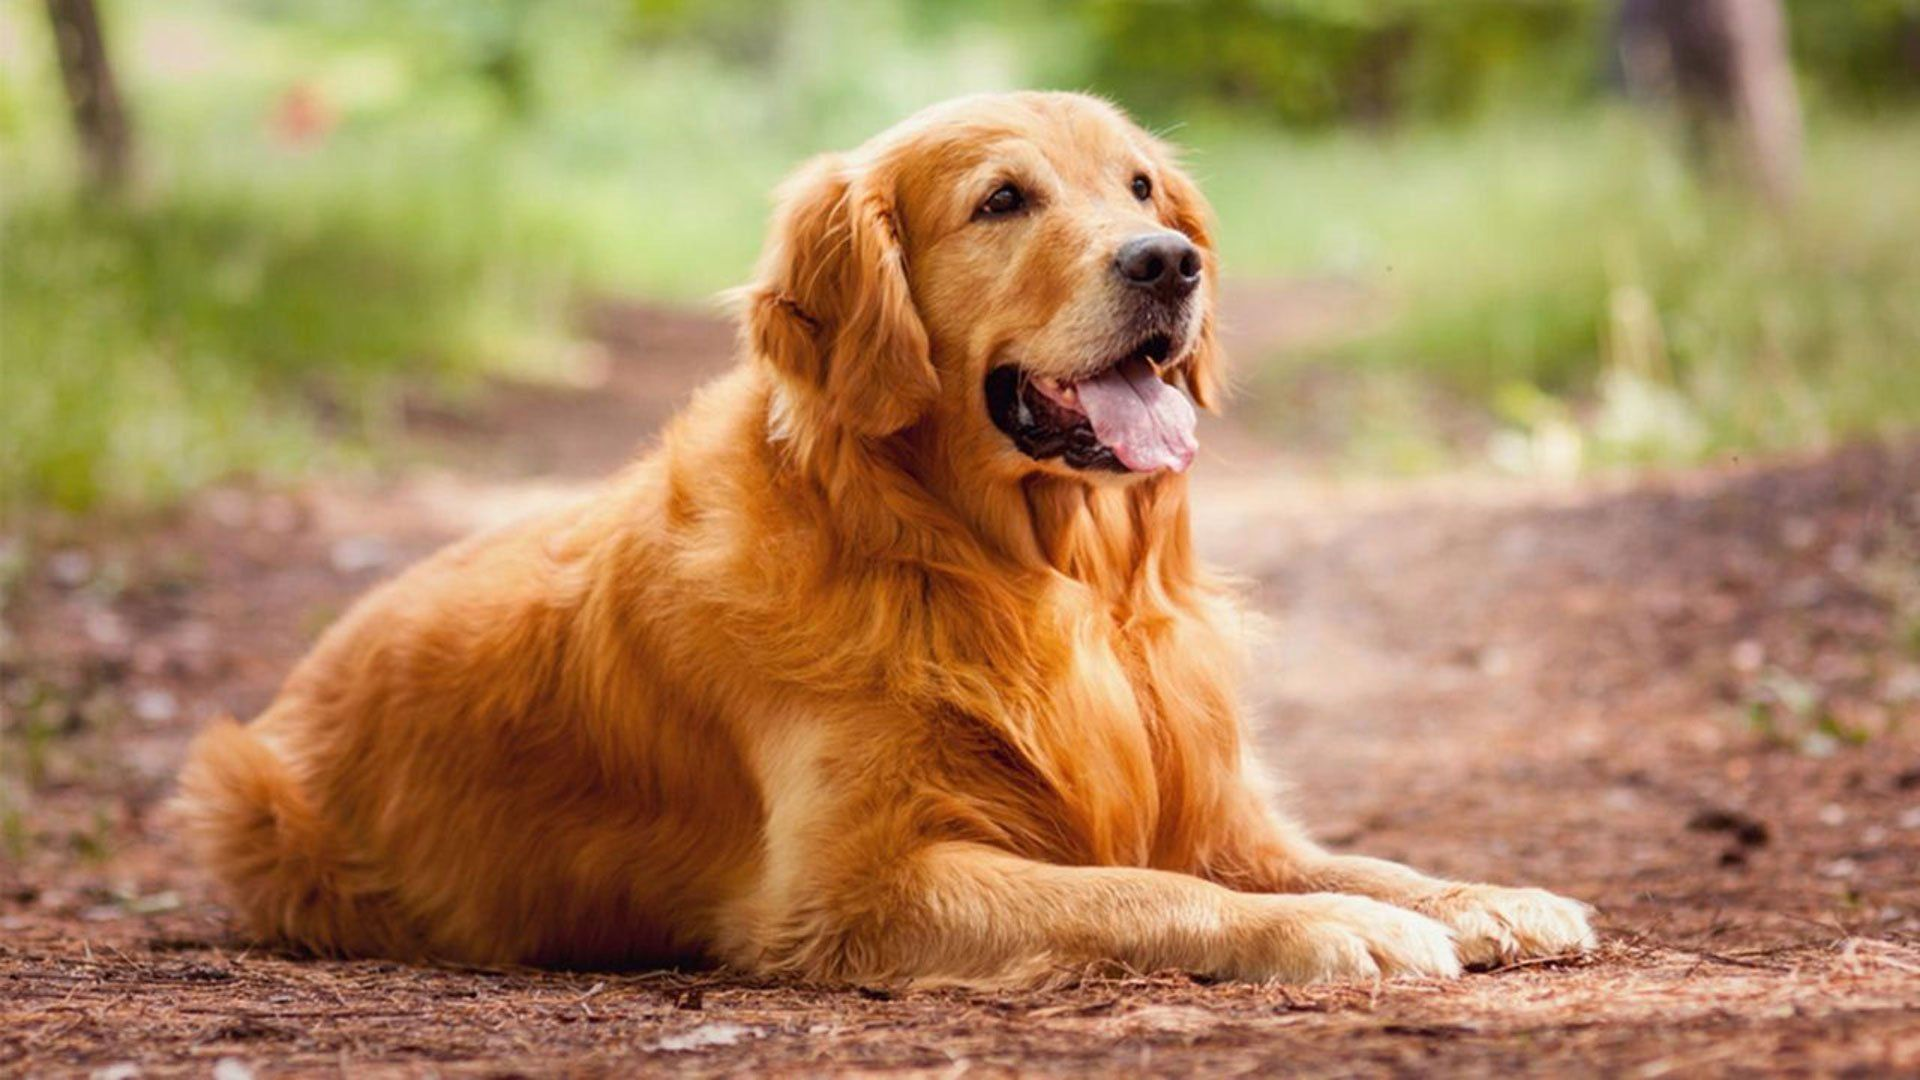 The Golden Retriever An Intelligent Worker And A Patient Family